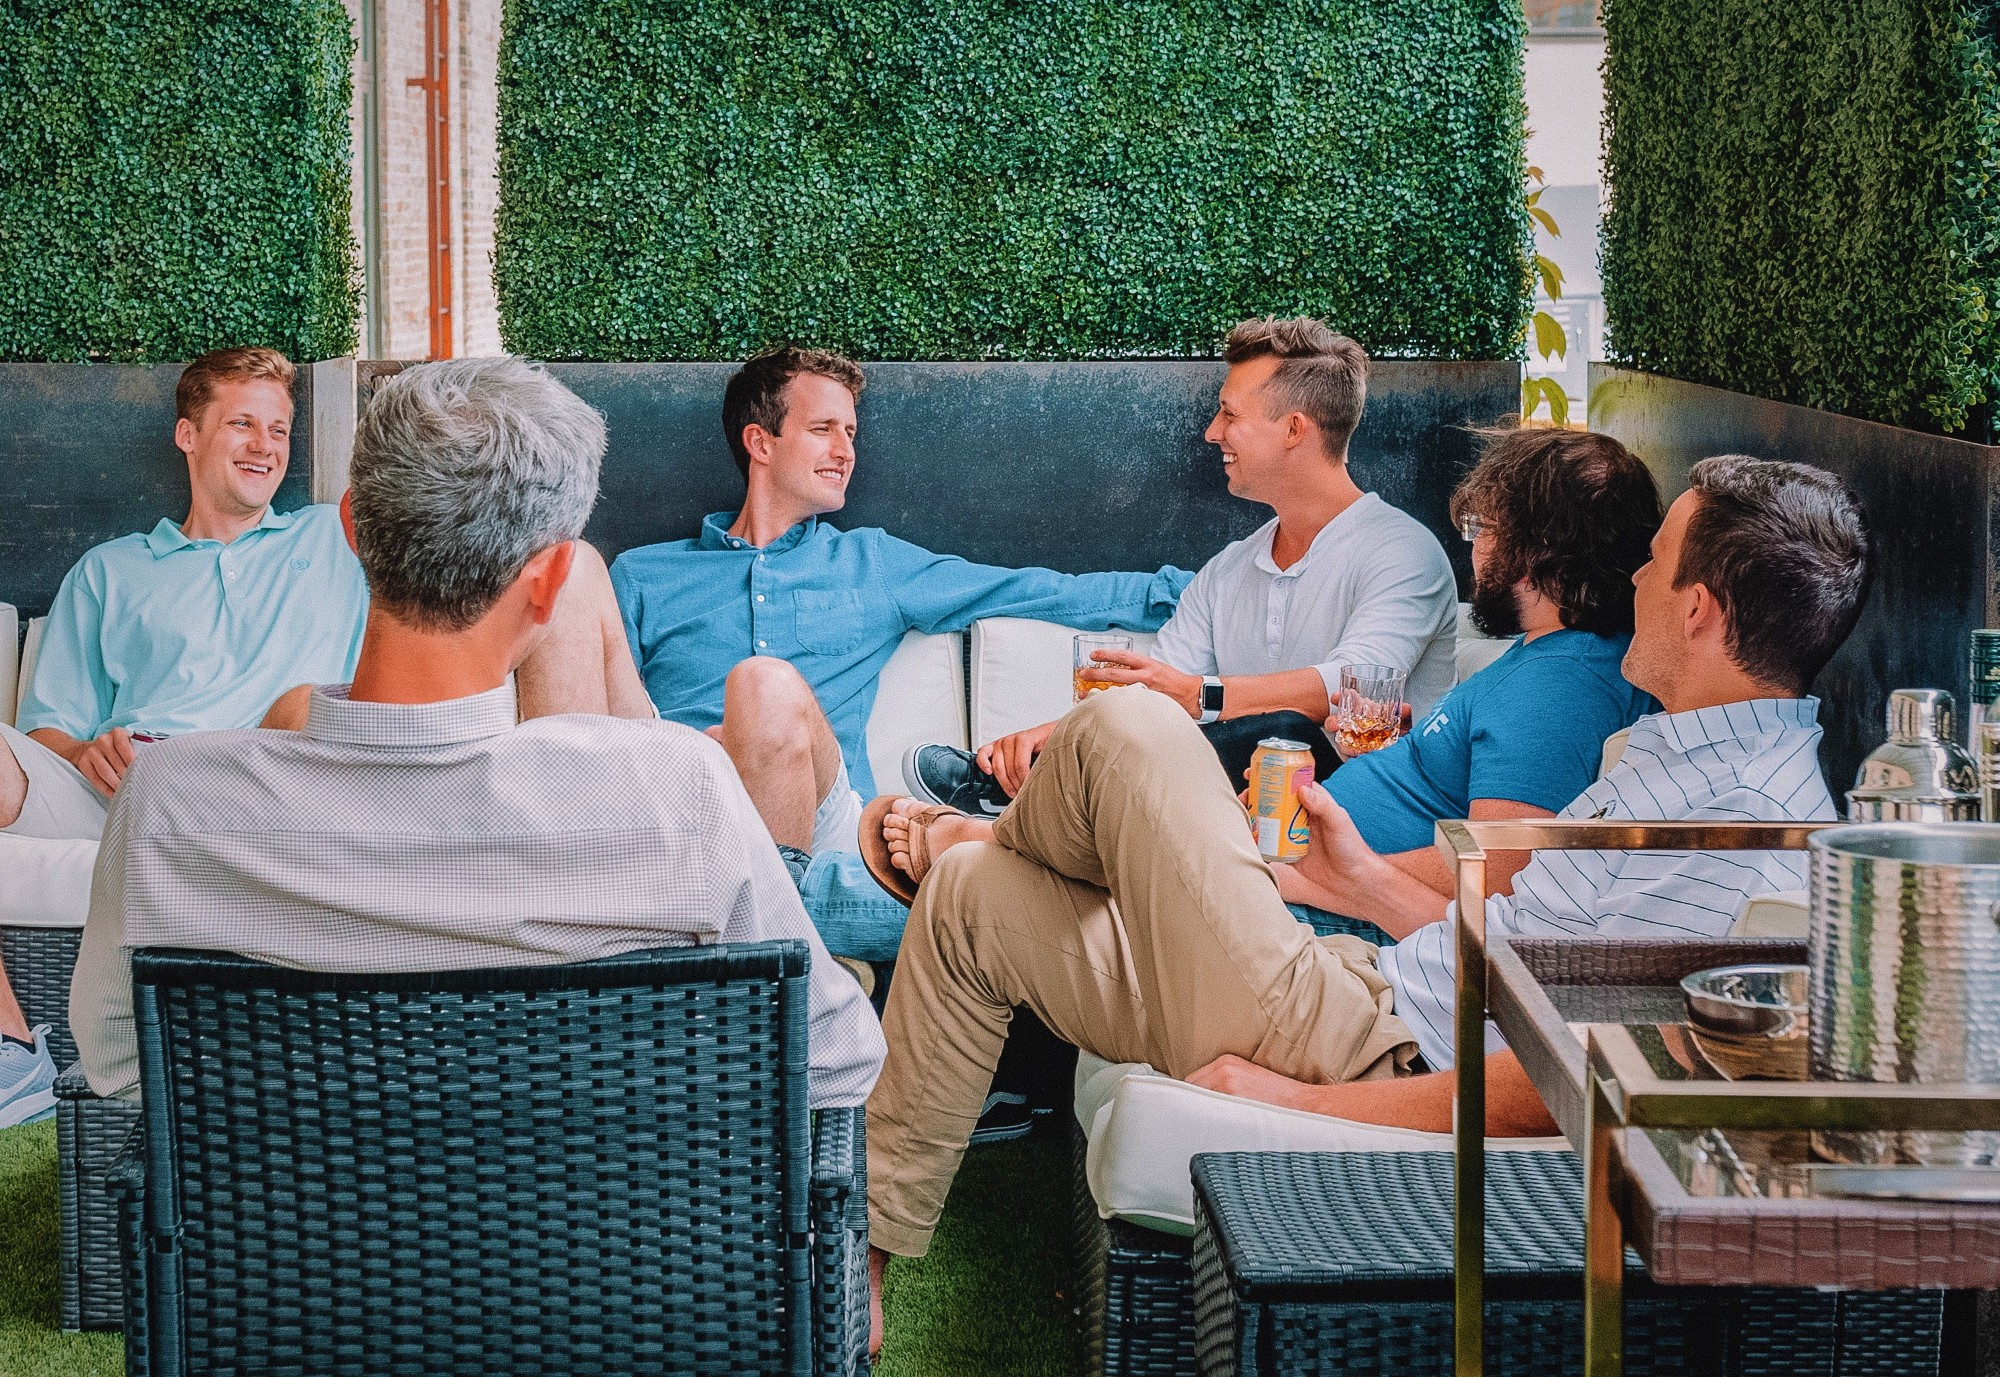 Six men sitting on couch outdoors having a conversation